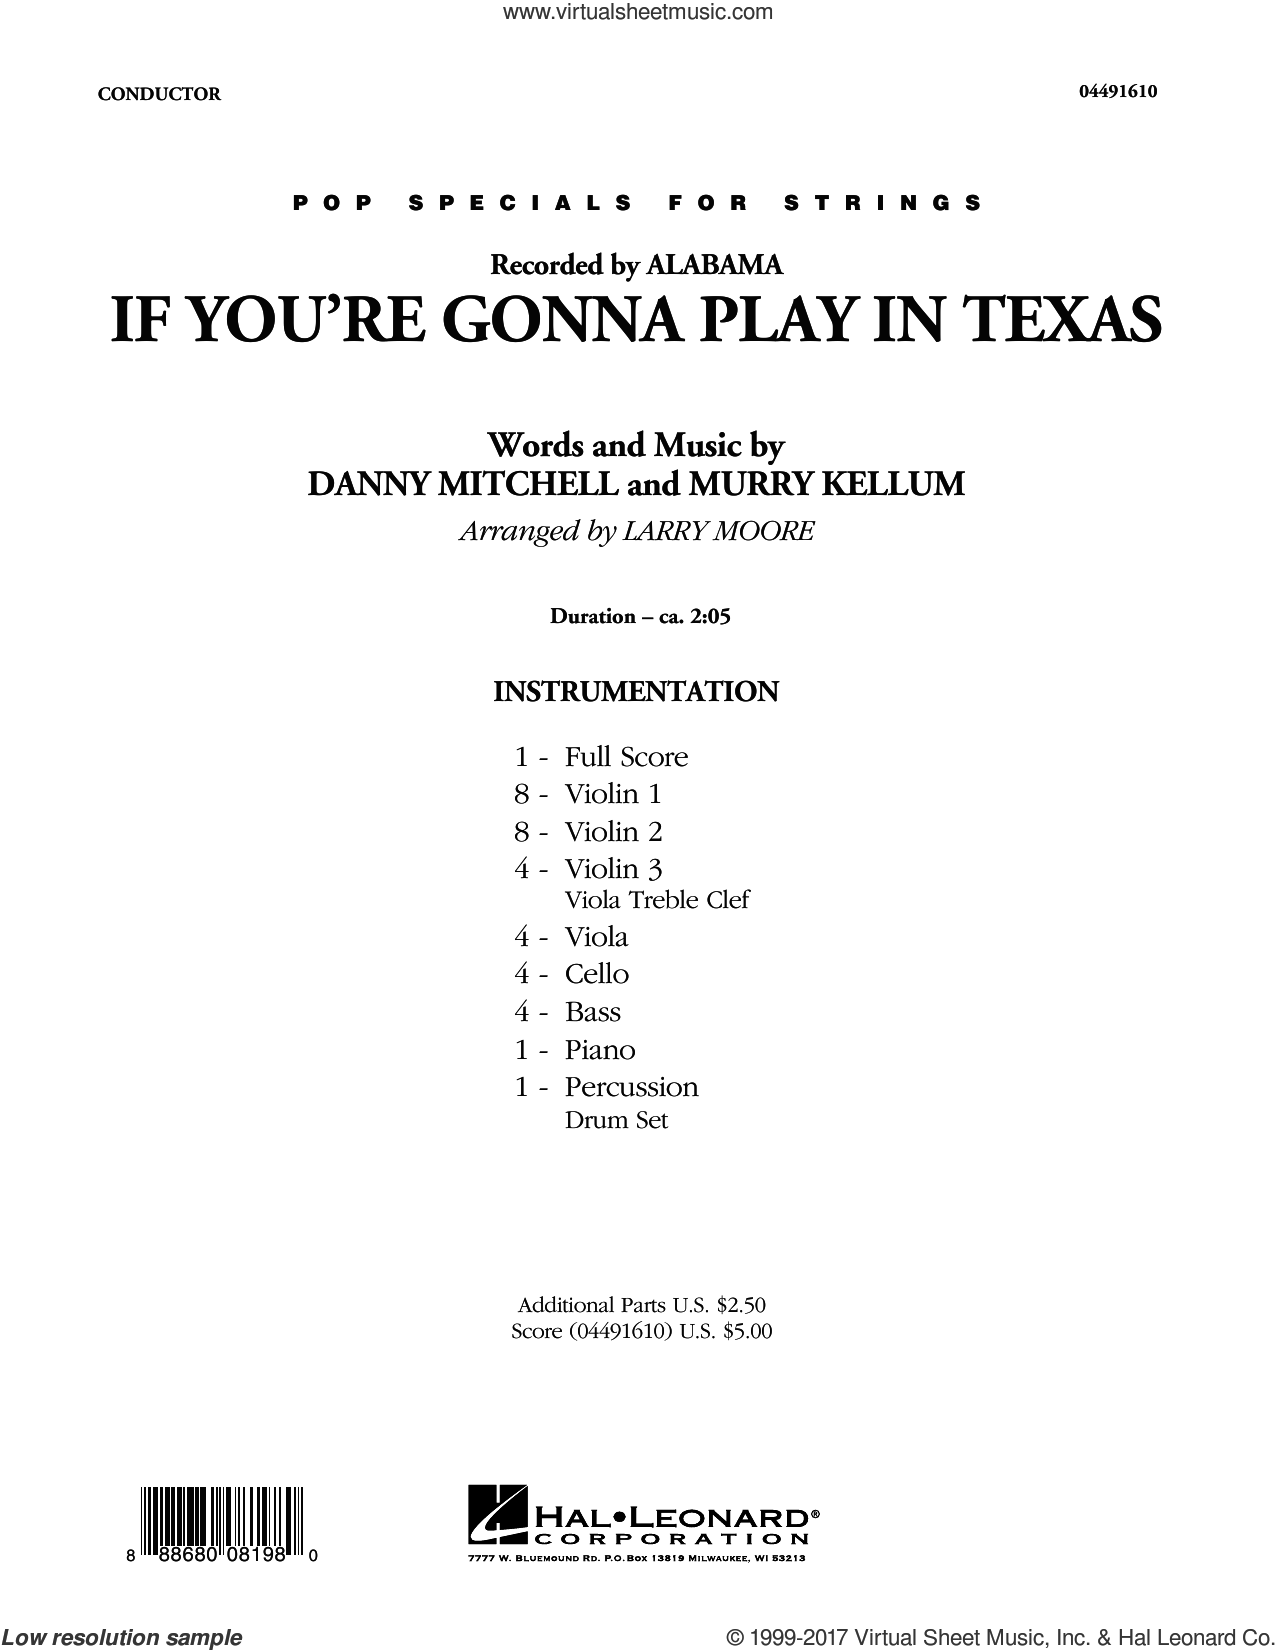 If You're Gonna Play in Texas (You Gotta Have a Fiddle in the Band) (COMPLETE) sheet music for orchestra by Larry Moore, Alabama, Dan Mitchell, Danny Mitchell and Murry Kellum, intermediate skill level